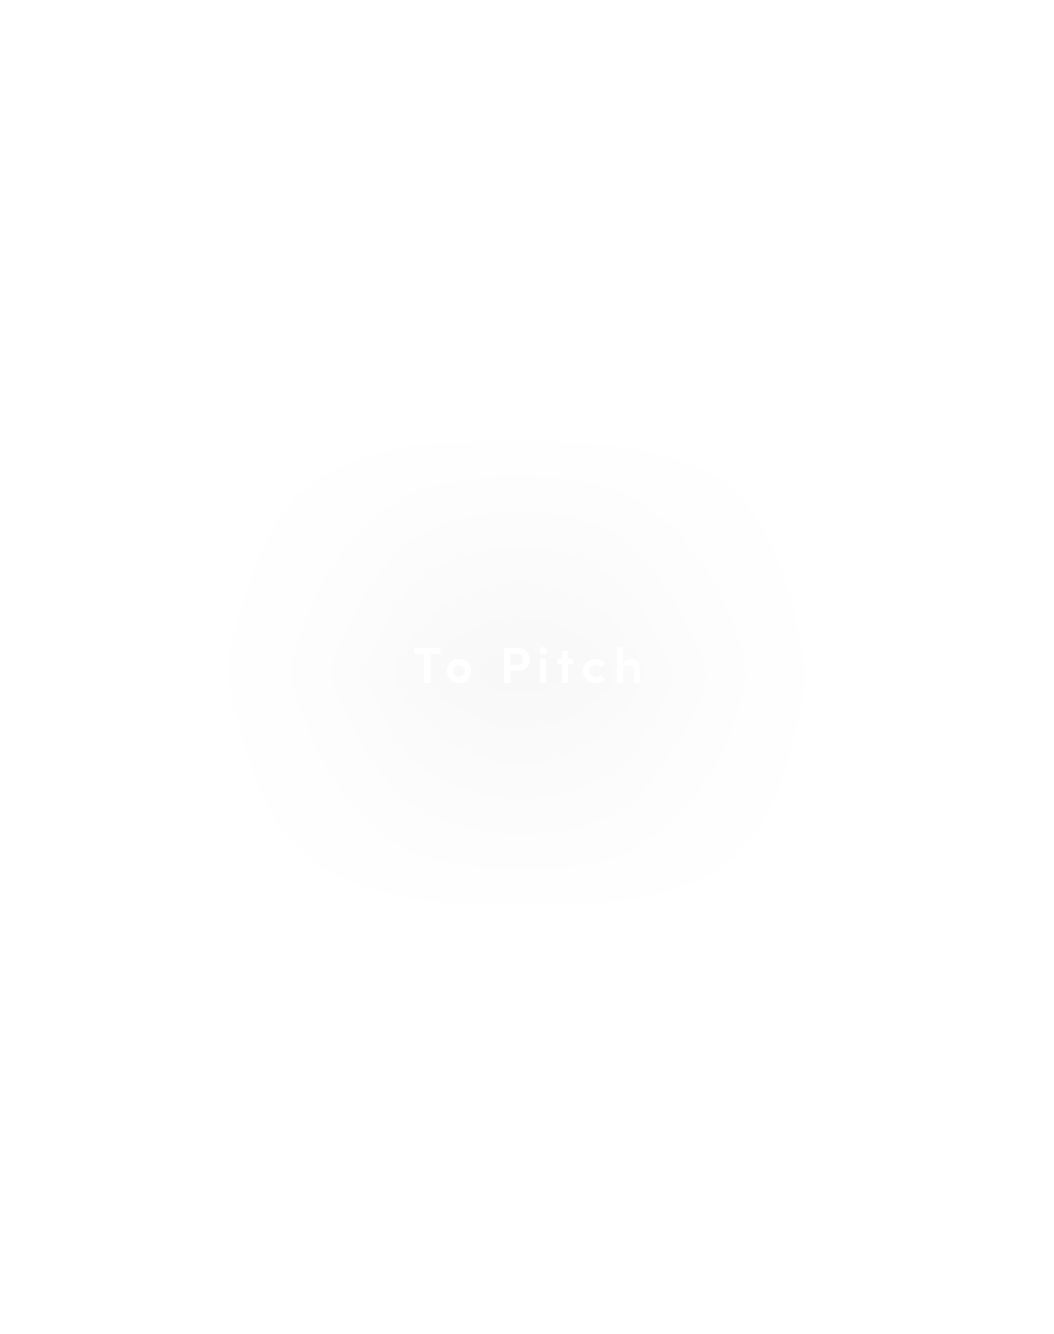 TO PITCH